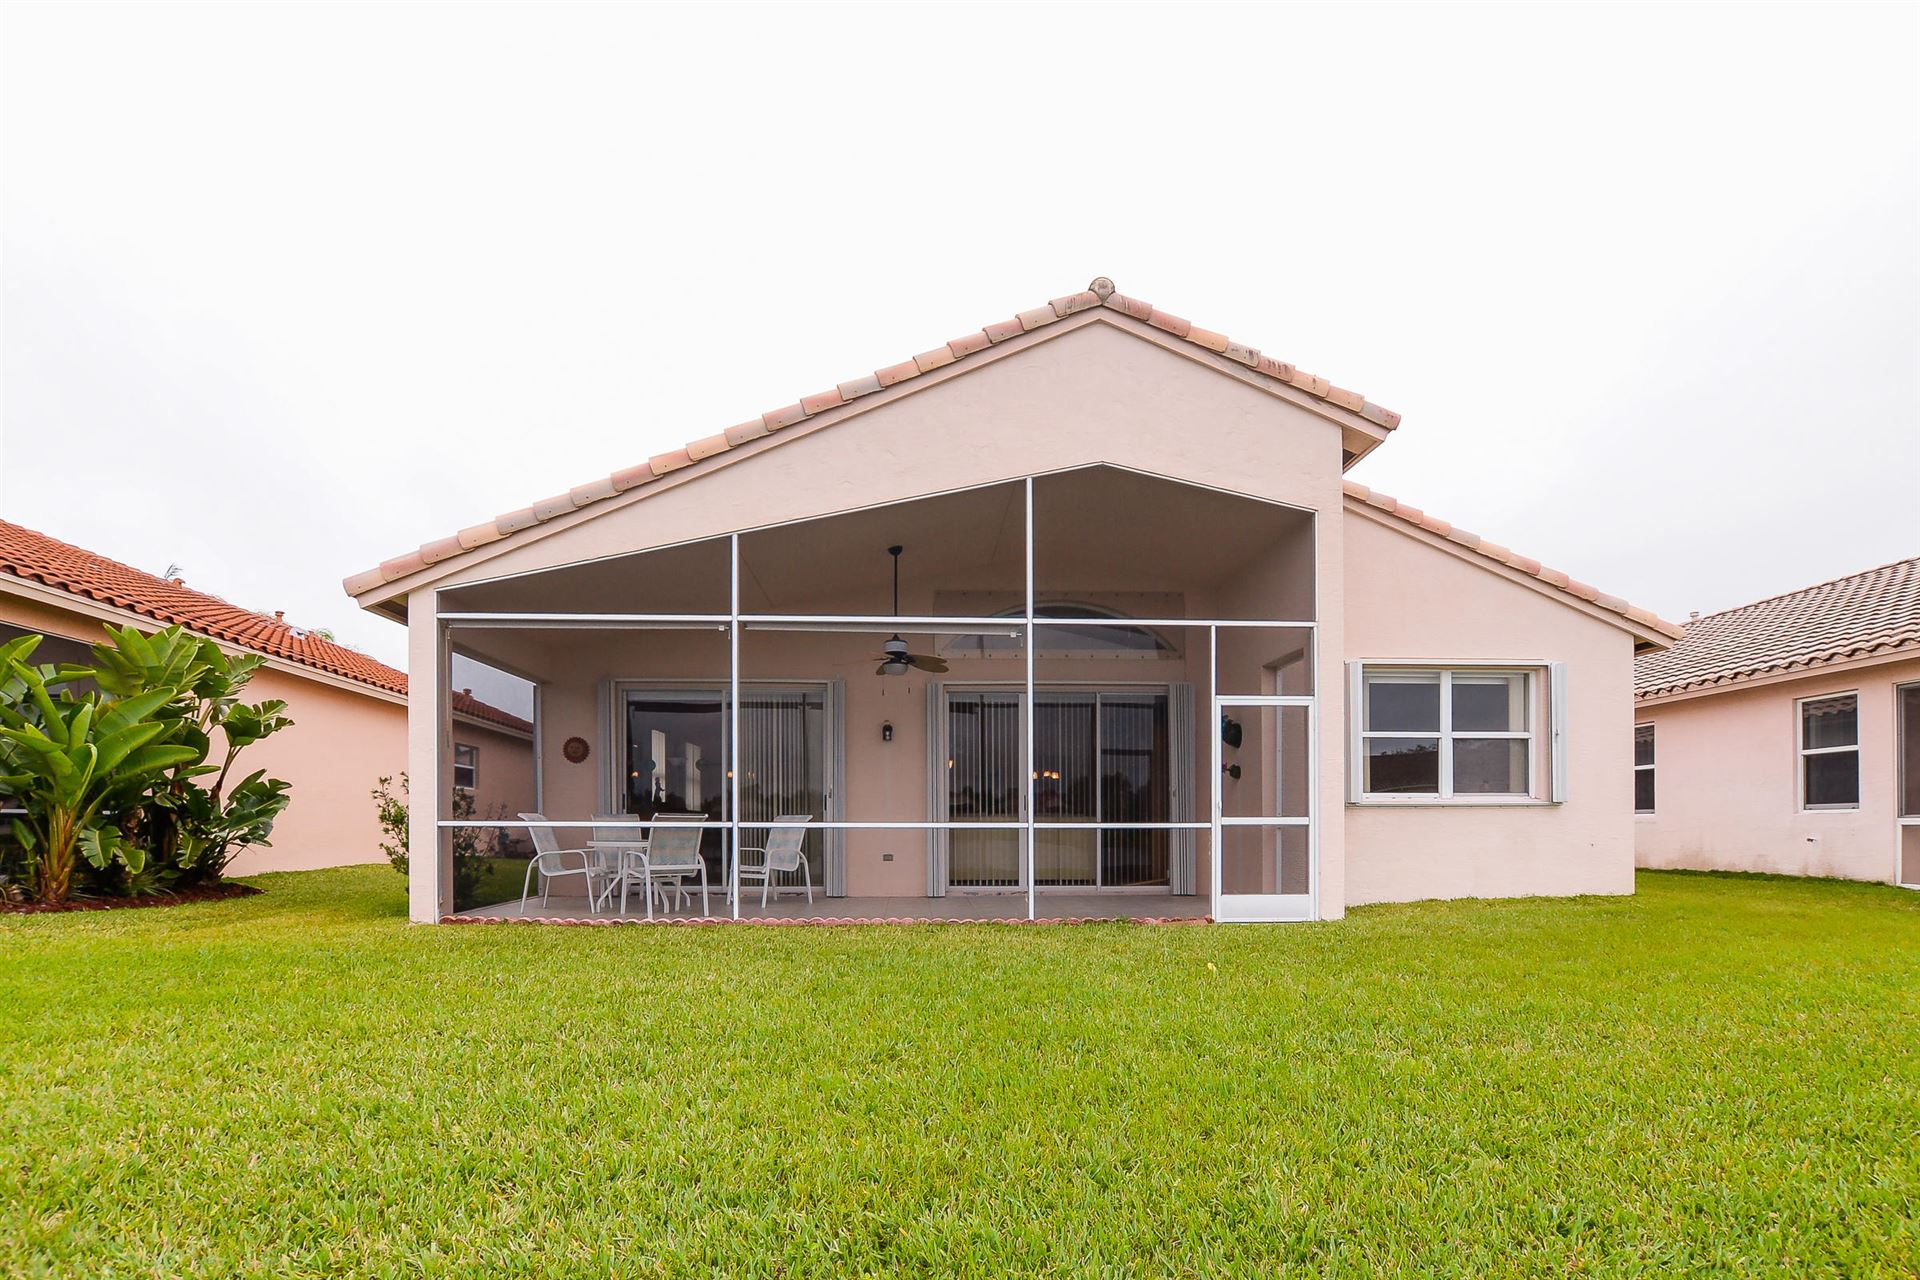 Photo of 431 NW Sunview Way, Port Saint Lucie, FL 34986 (MLS # RX-10603566)